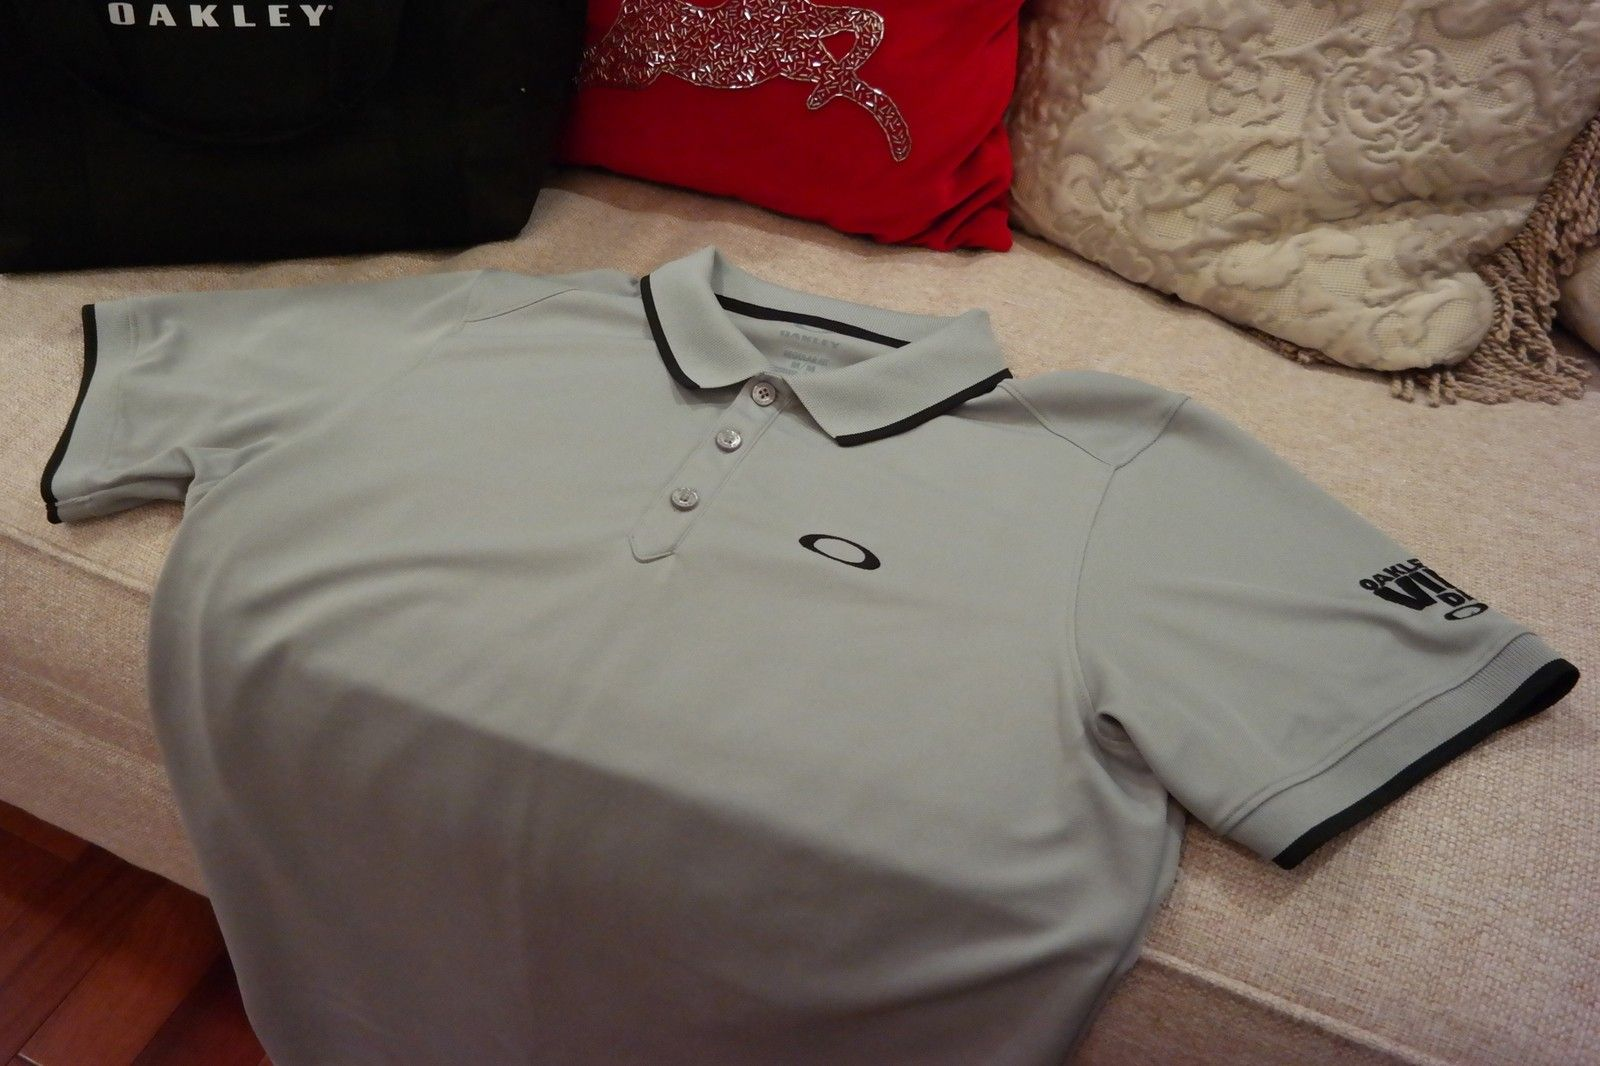 Want something you can't go out and buy?  OAKLEY V.I.P. polo, mf bag, golf balls and more. - SAM_1676.jpg